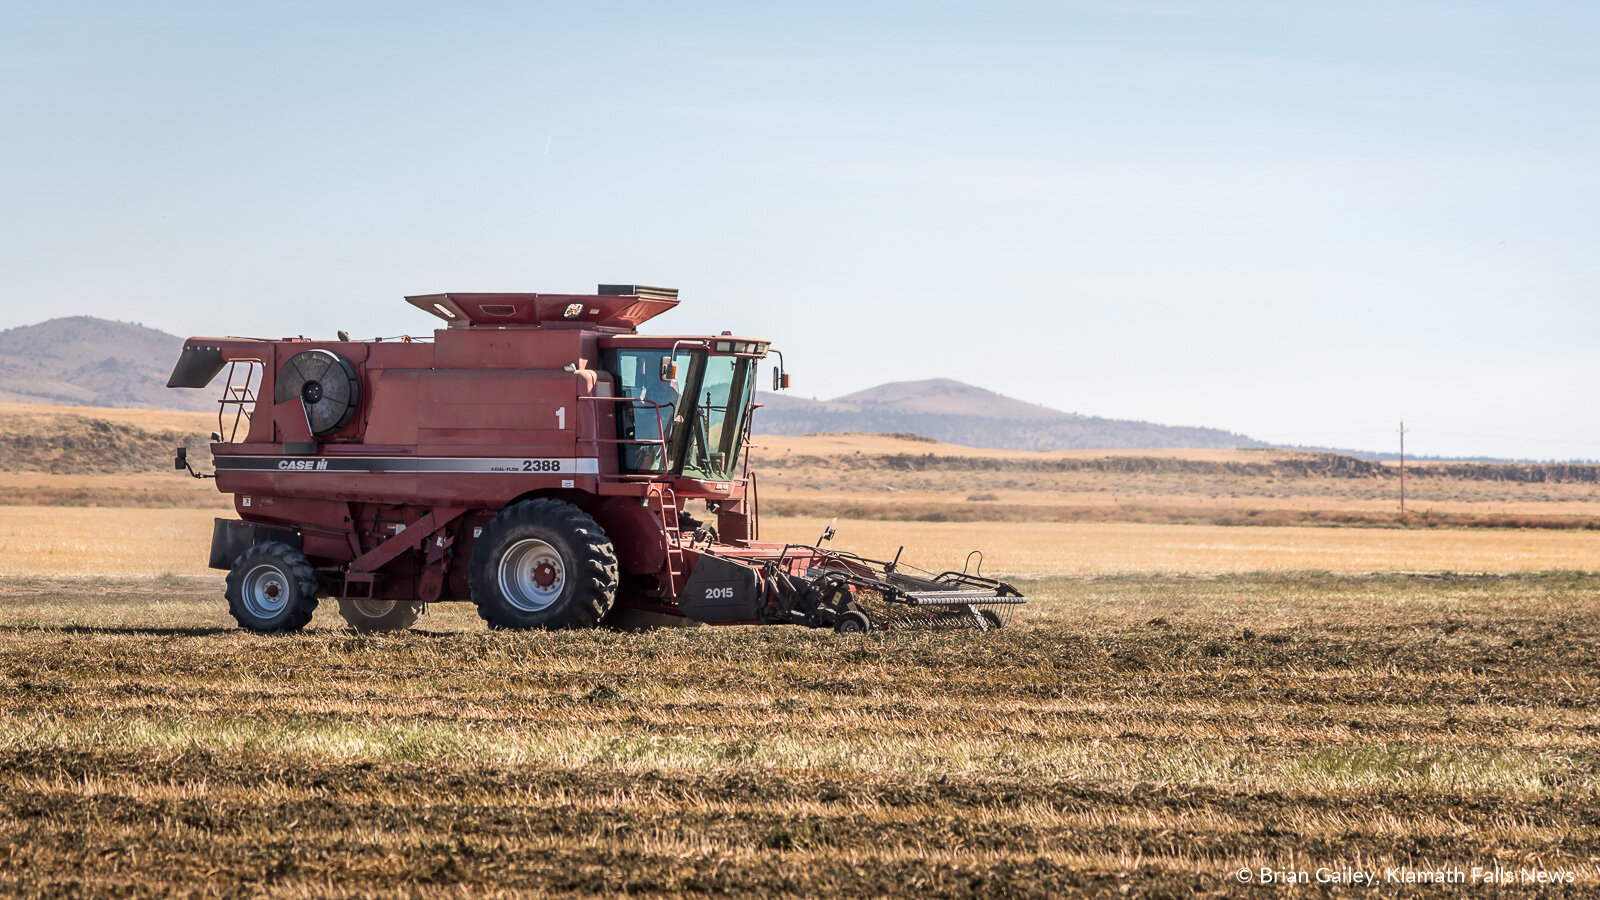 File photo - A custom built combine harvest mint leaves near Newell, California. Mint harvested on this farm is destined for tea in the European Union and for use as mint oil for food flavoring. September 27, 2018 (Brian Gailey)